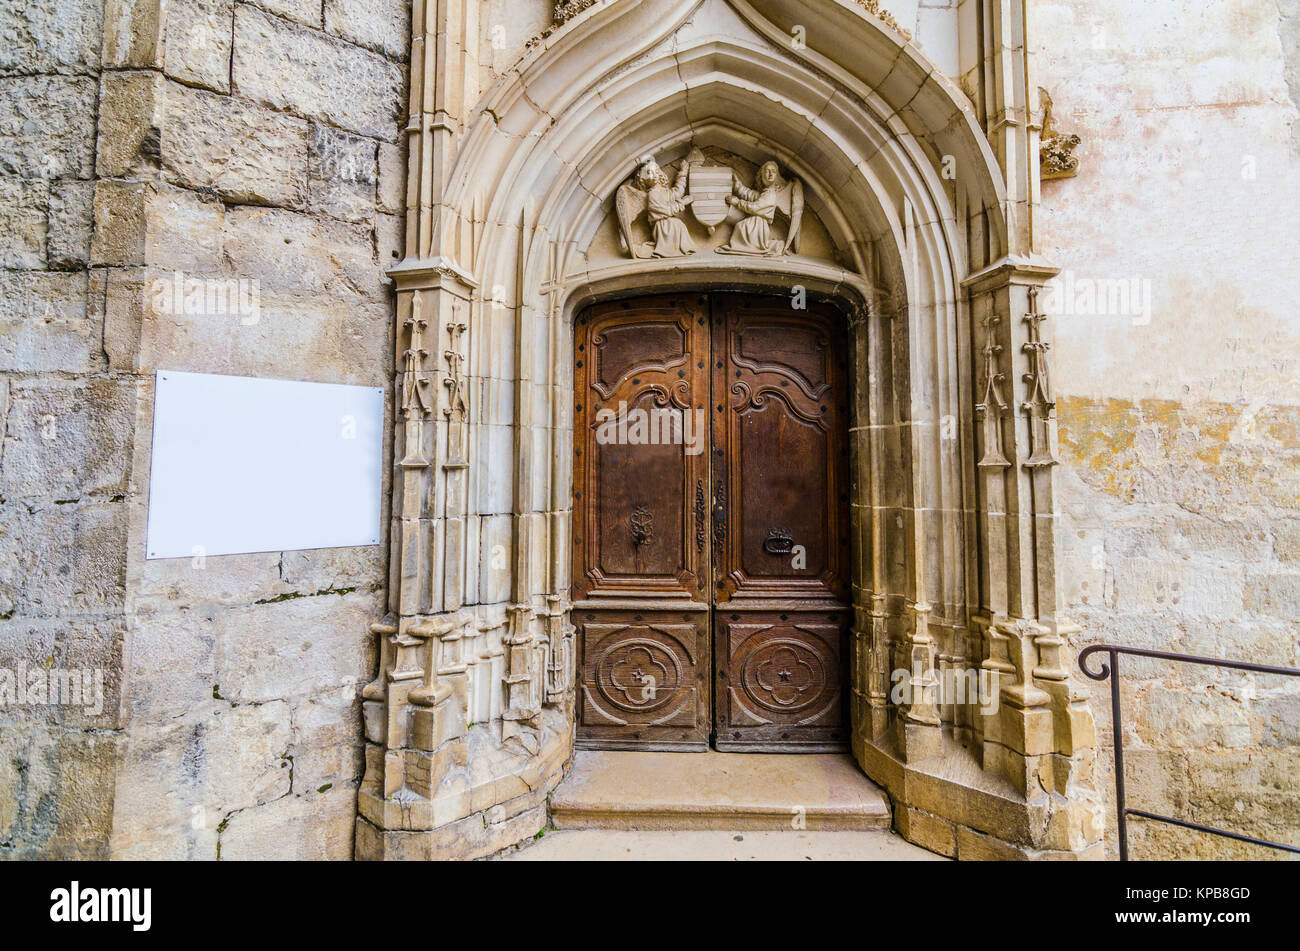 Sanctuary of Rocamadour entrance doors to the chapel of our lady & Sanctuary of Rocamadour entrance doors to the chapel of our lady ...